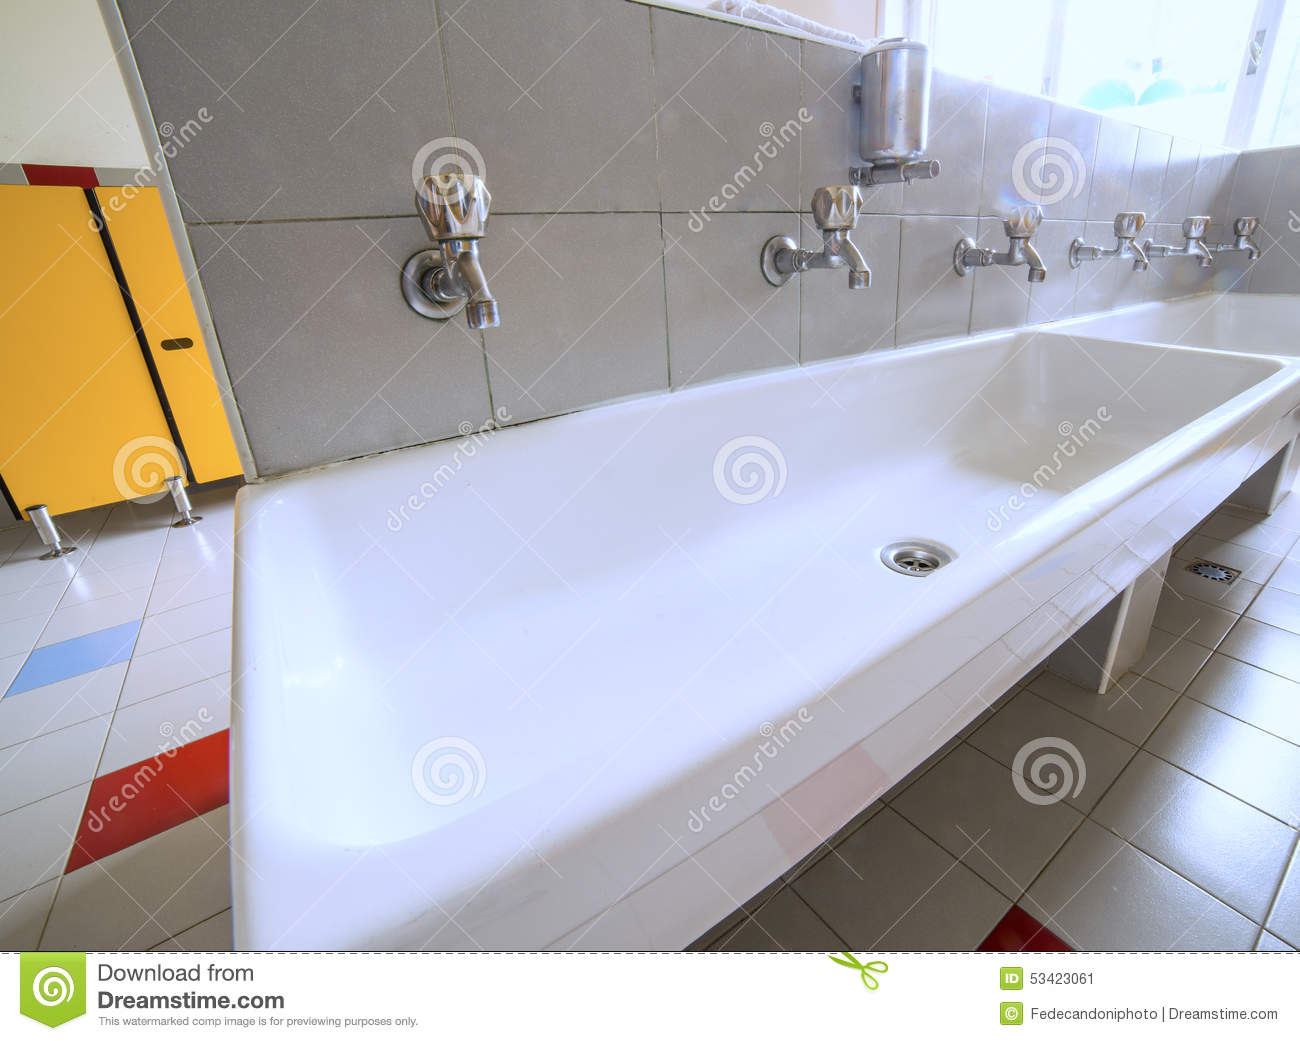 Ceramic Sink With Many Taps In The School Stock Image - Image of ...